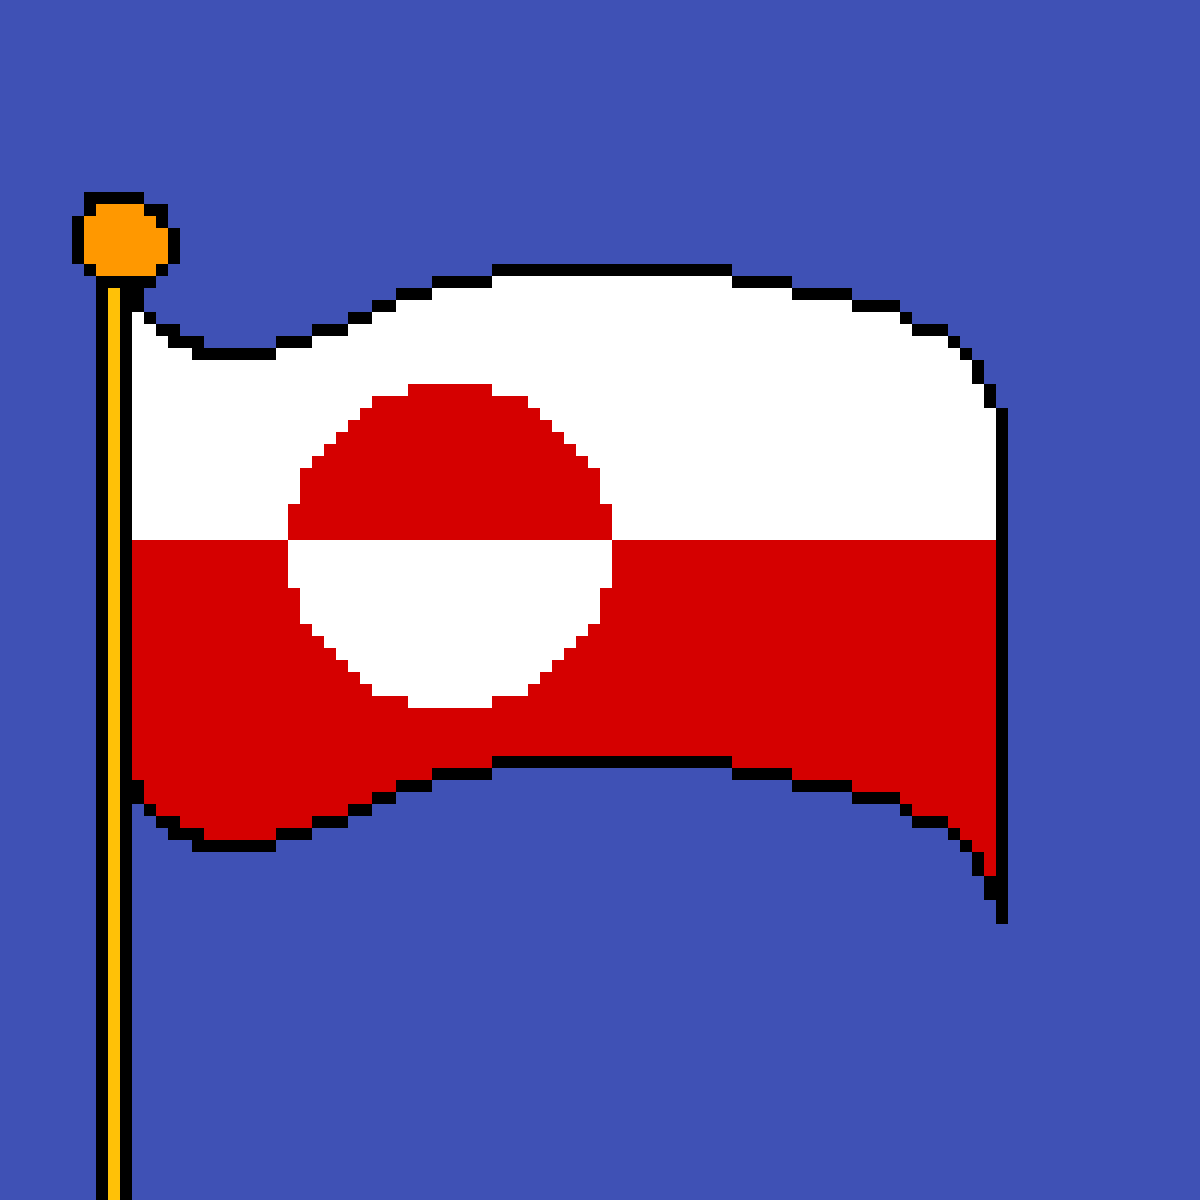 The flag of Greenland by poison-darts317